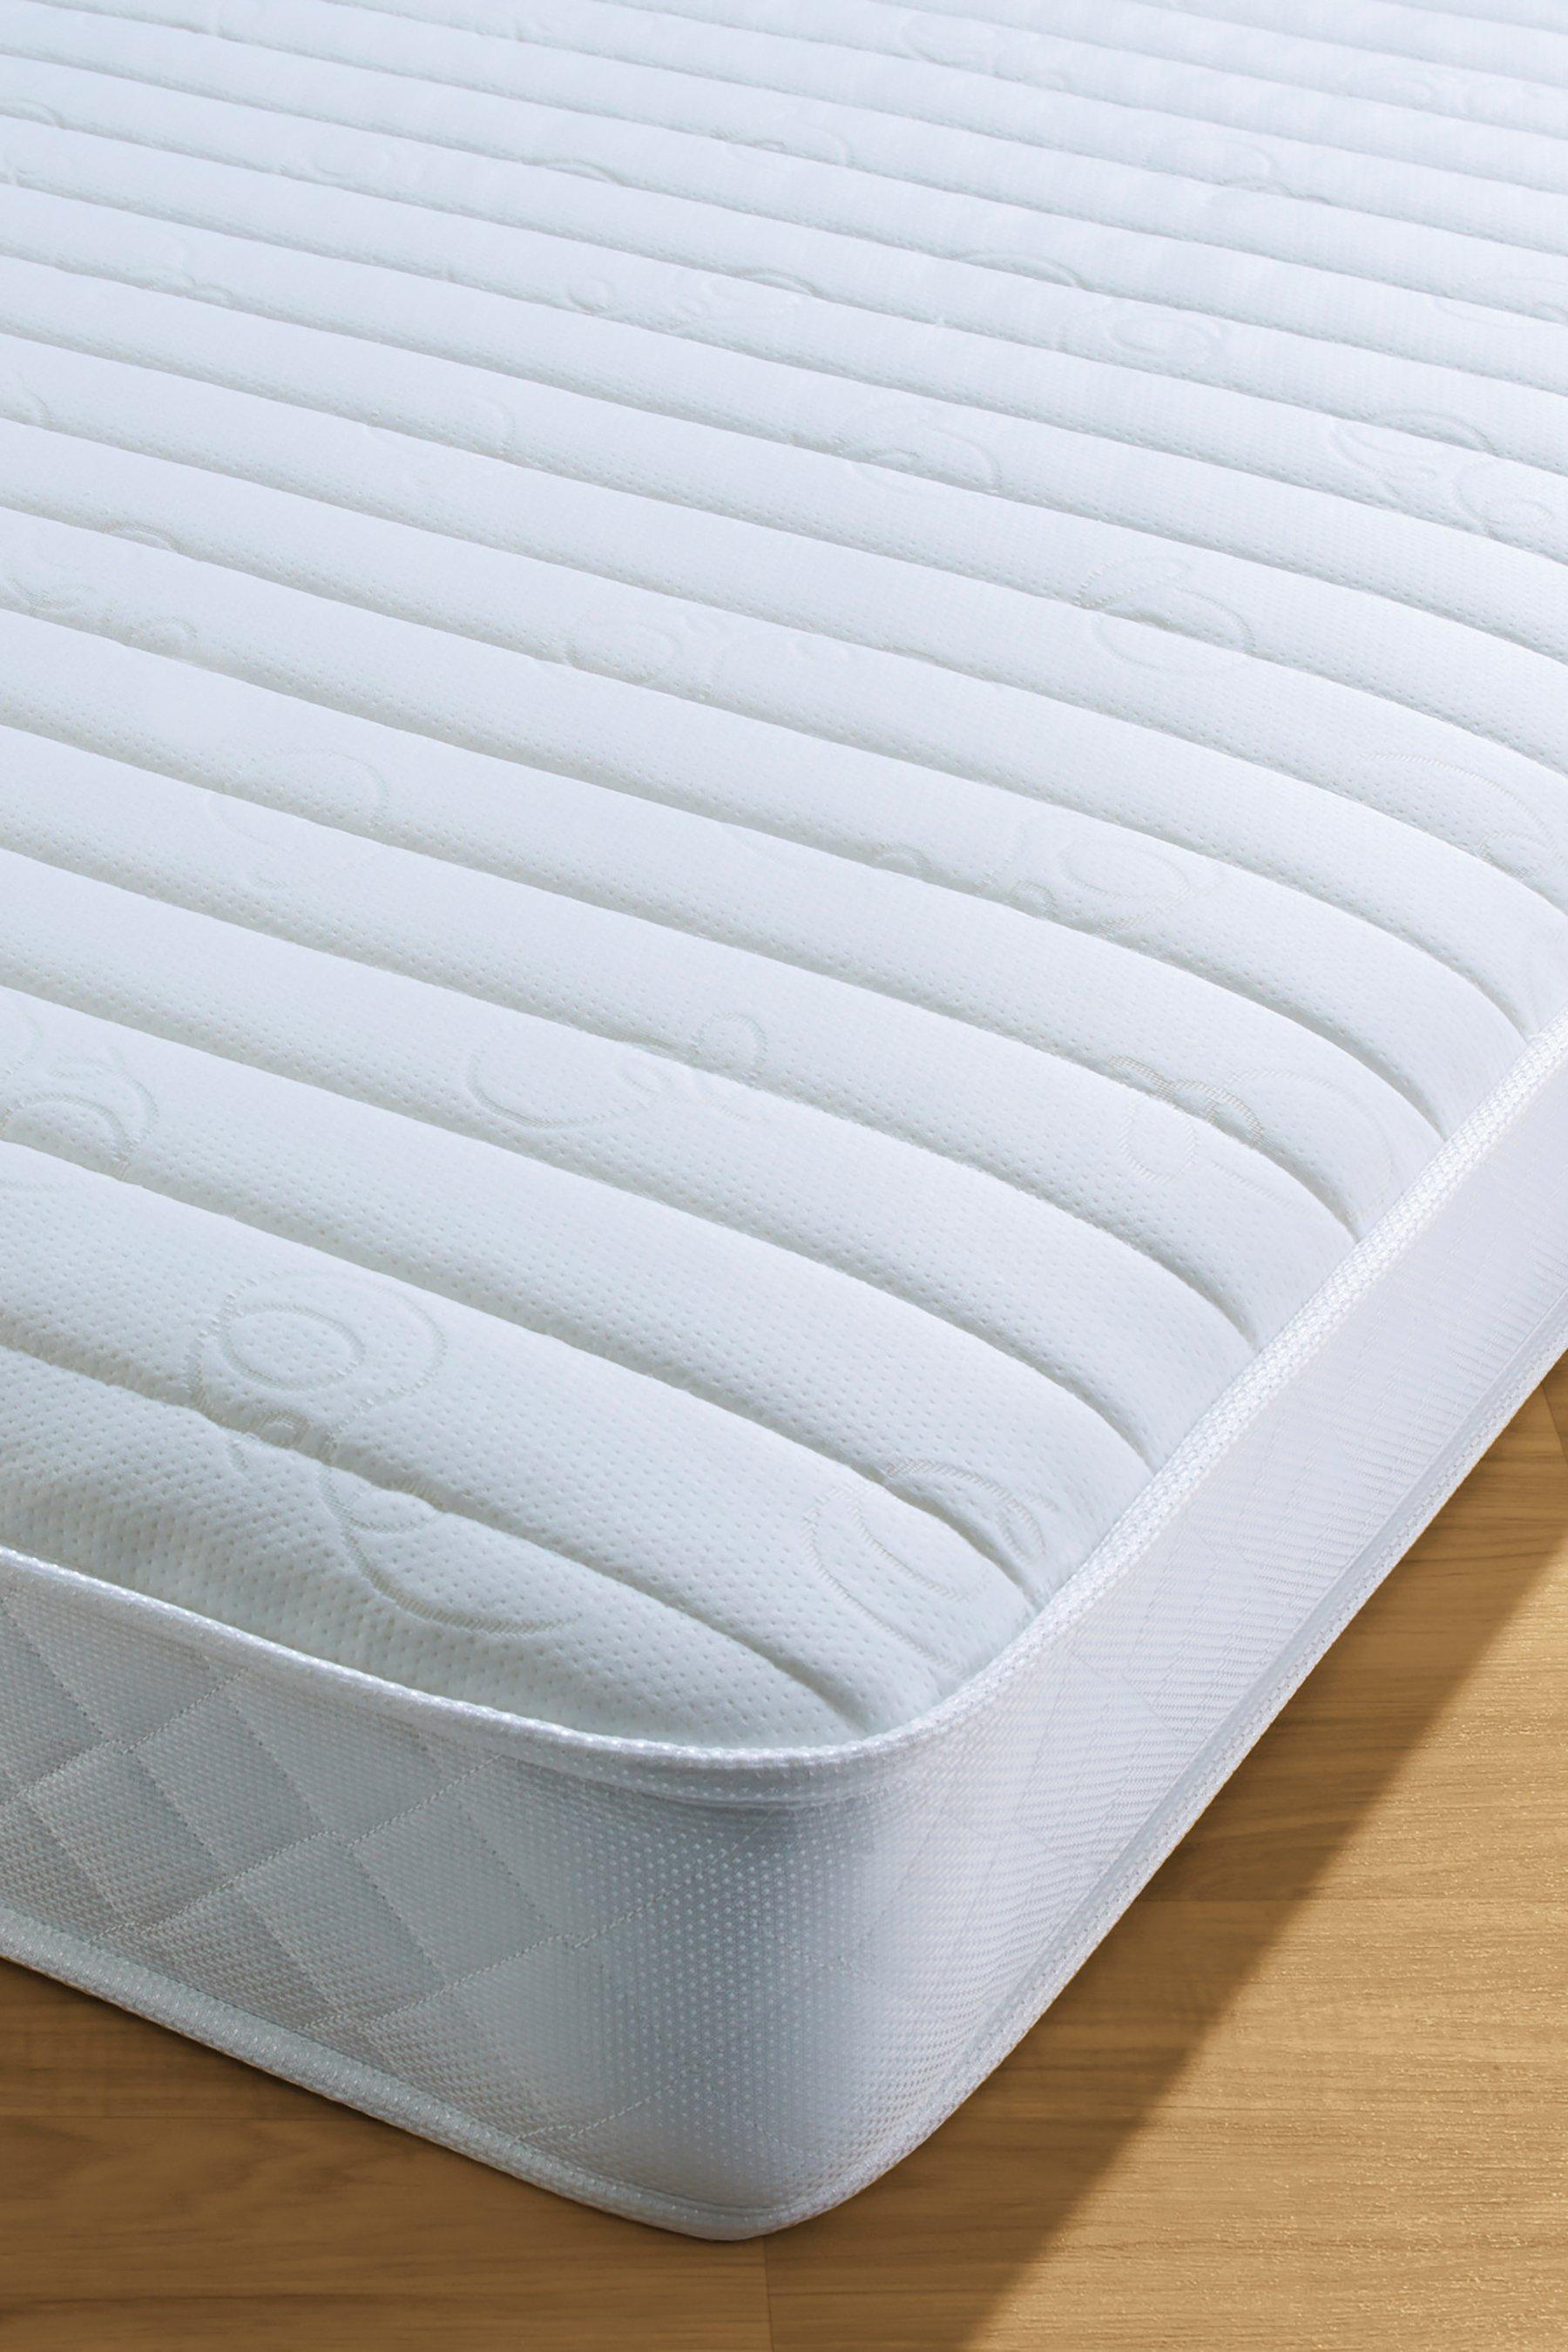 Compare prices for Airsprung Comfort Mattress - Latex